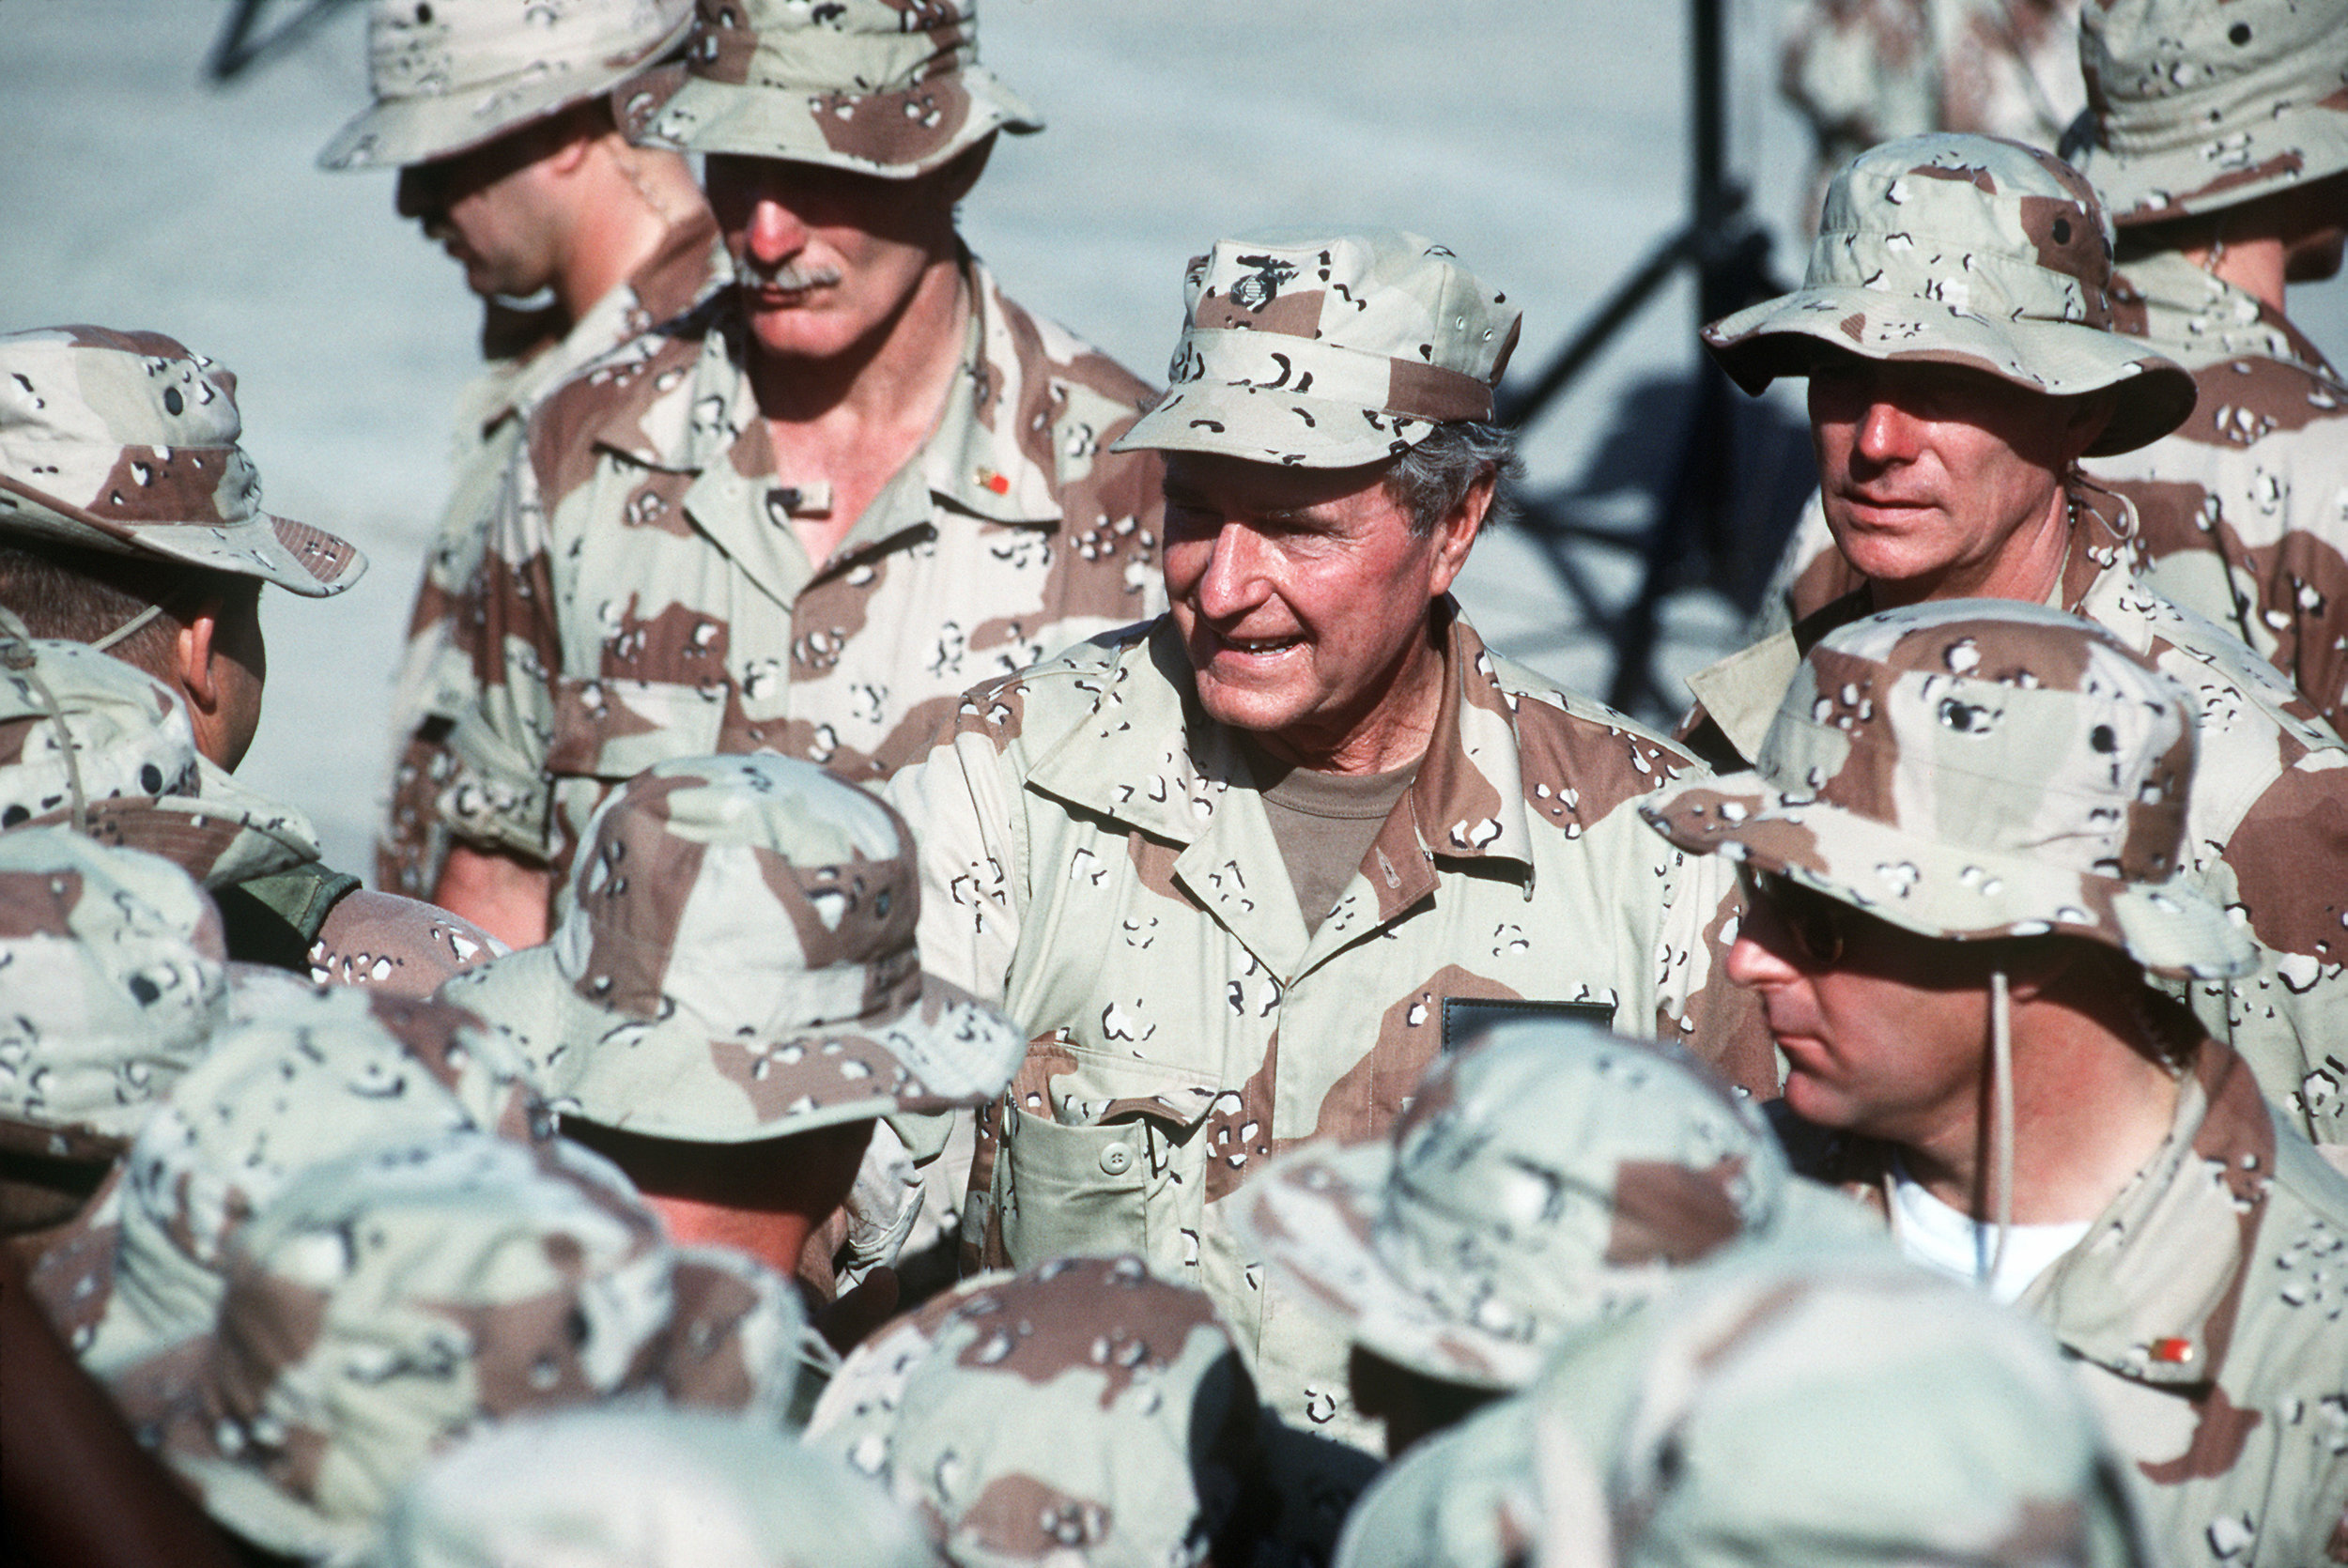 U.S. President George H.W. Bush shakes hands and speaks to individuals as he walks through a crowd of U.S. troops during Operation Restore Hope at the Mogadishu airport in Somalia, Dec. 31, 1992. (U.S. Air Force photo by Master Sgt. Hans H. Deffner)